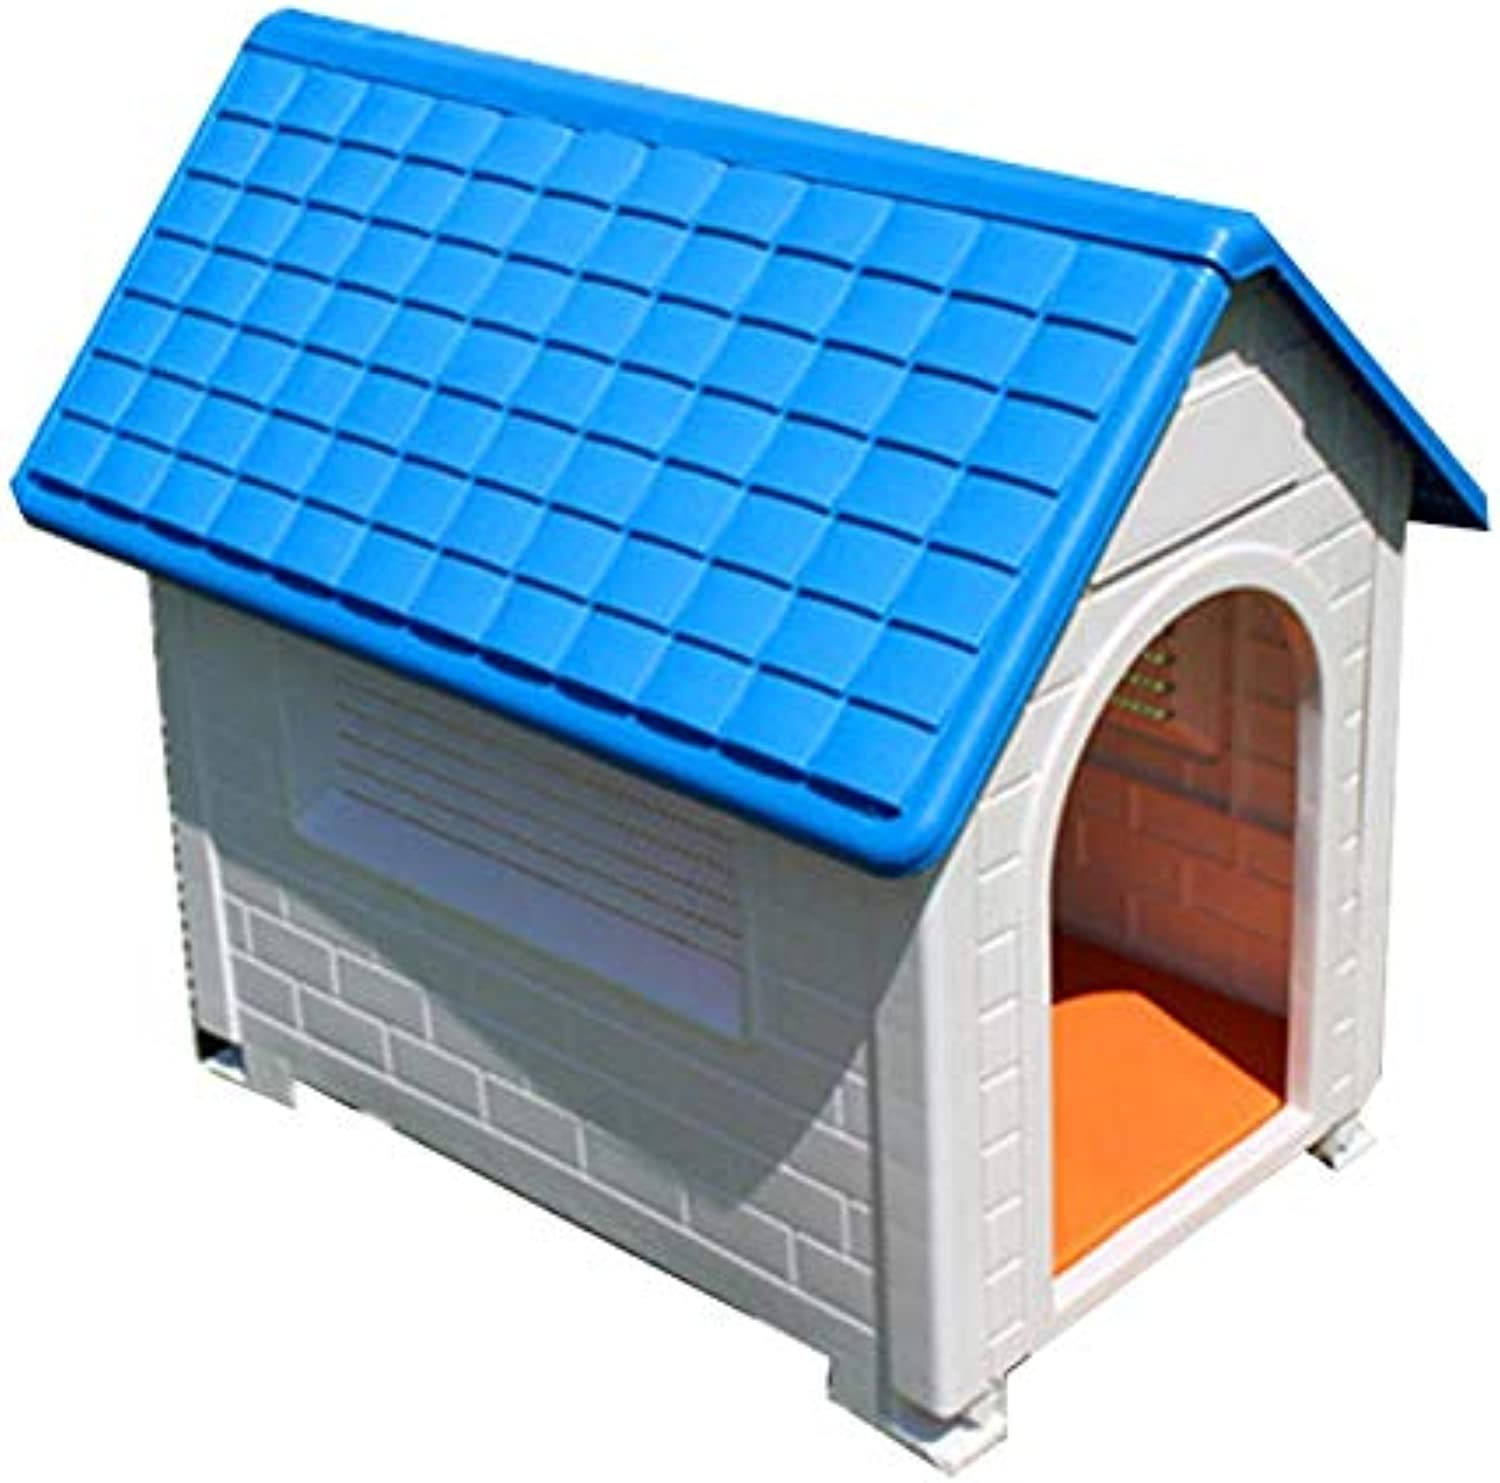 Dog House Small to Medium pet AllWeather Dog House Puppy shelter Indoor and Outdoor Washable Breathable Waterproof pet Cover (color   bluee)